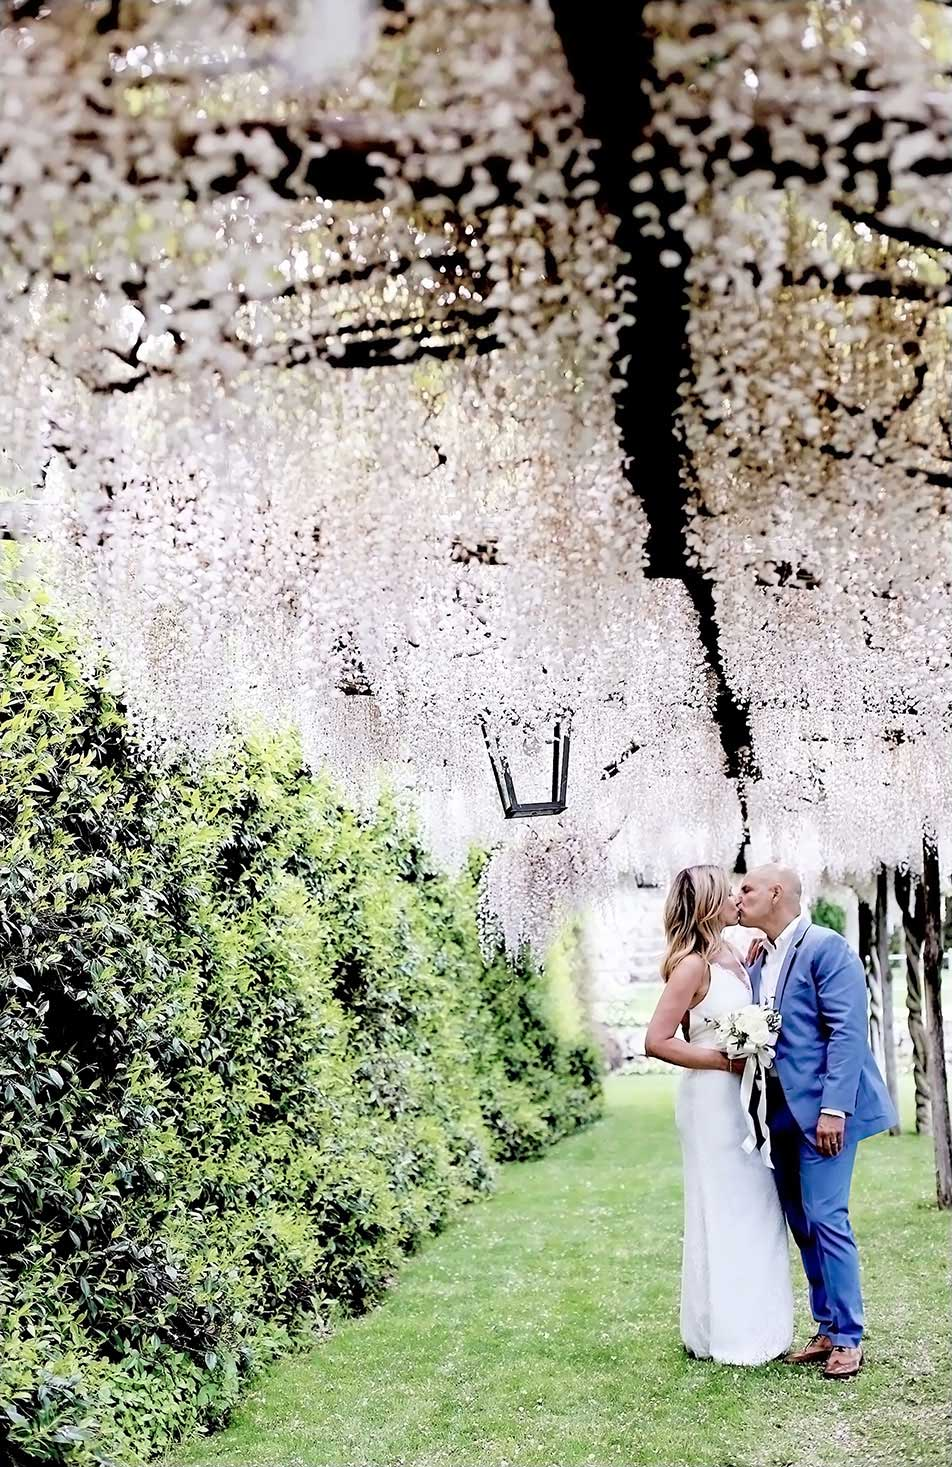 Luxury Destination Symbolic Ceremonies Garden Infinity Pool Events Hotel Restaurant Location five 5 Stars Wedding Belmont Hotel Caruso Claudia Francese Photography Sisters